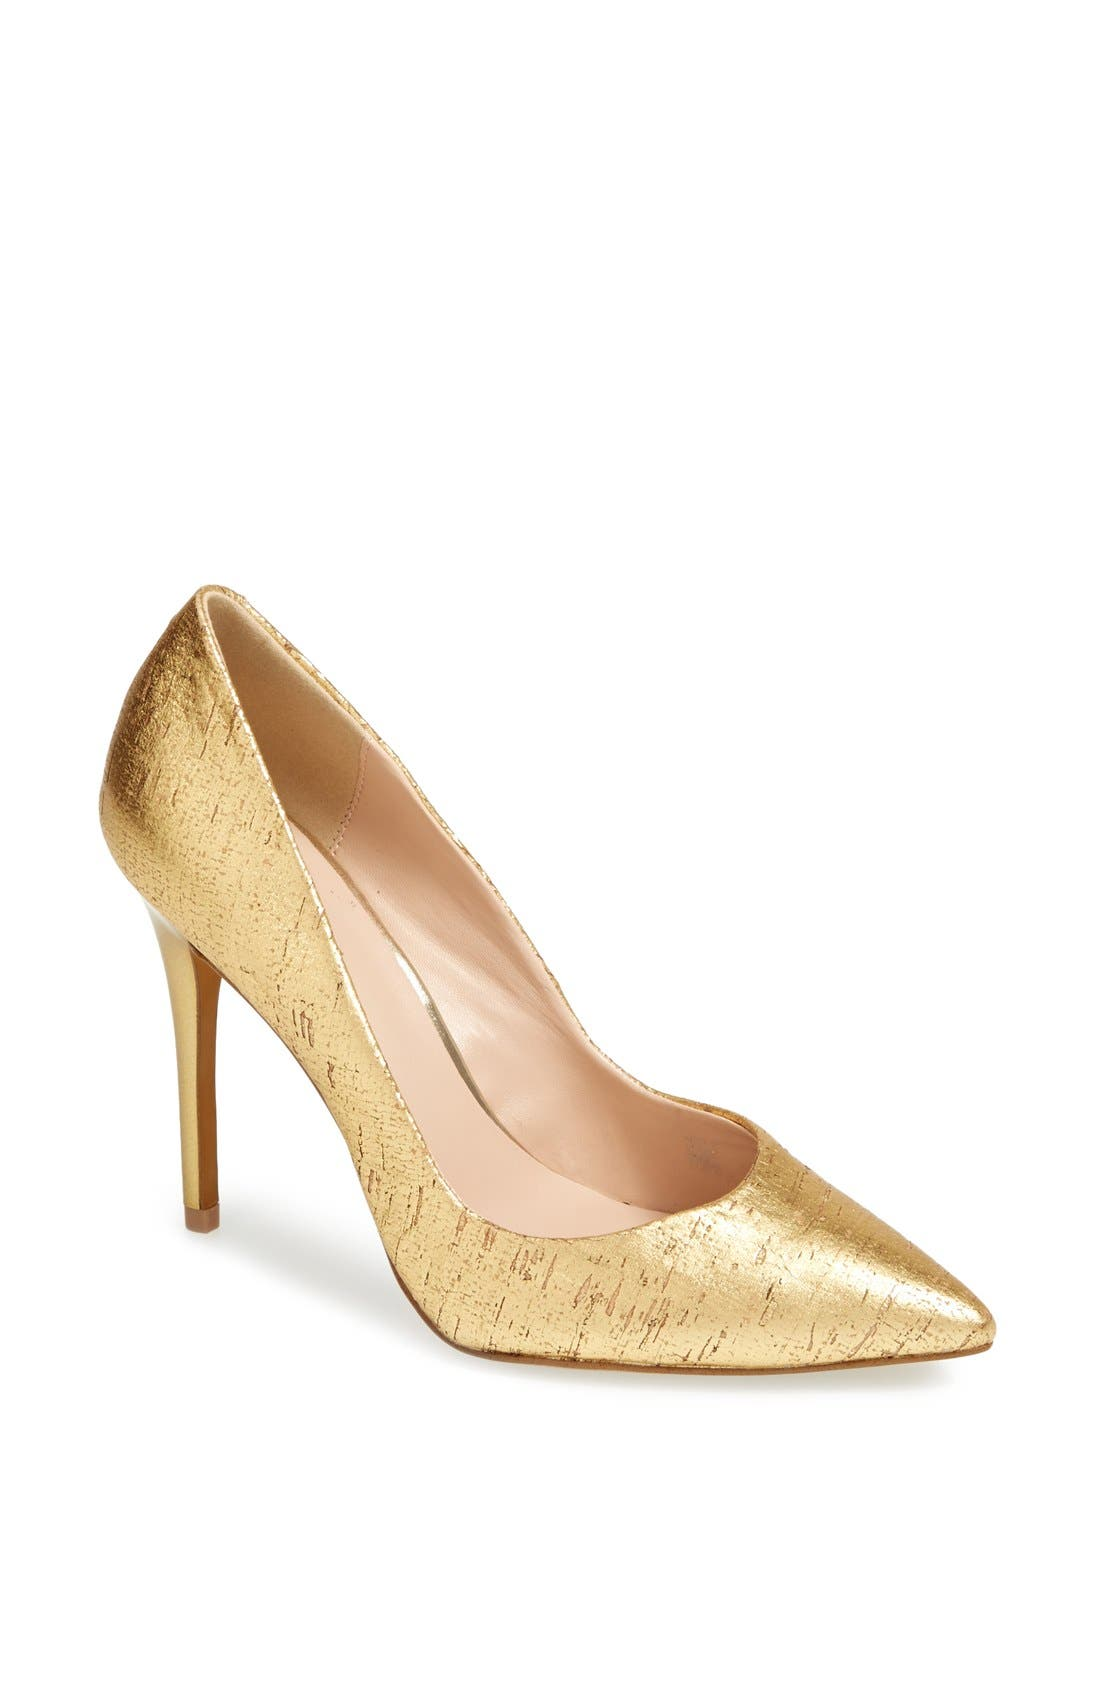 Alternate Image 1 Selected - Charles by Charles David 'Pact 2' Pointy Toe Pump